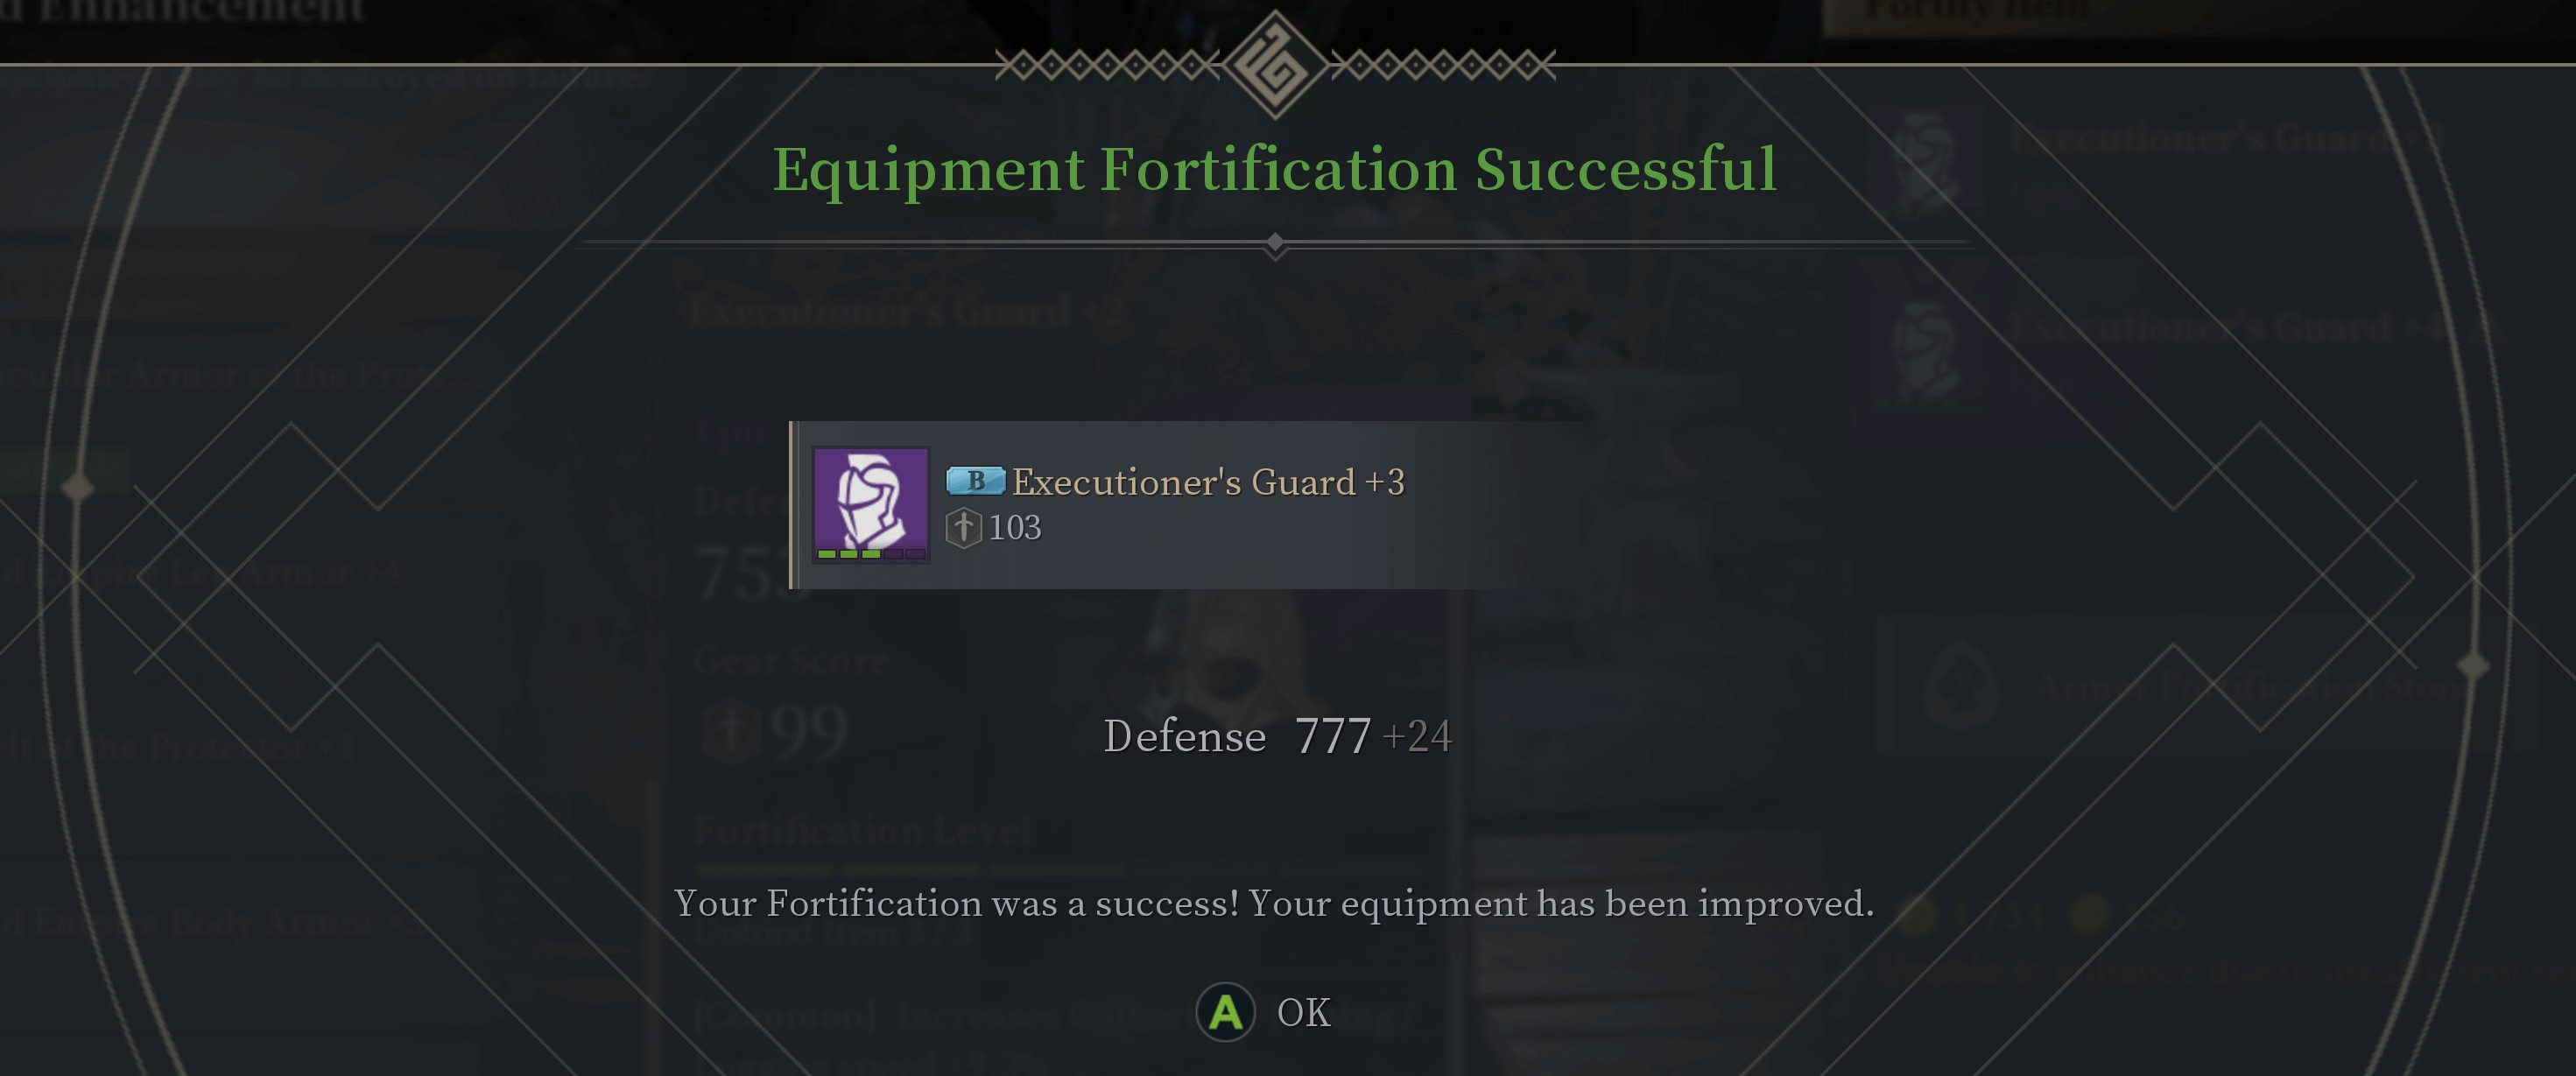 Unlicensed_Enhancement_Equipment_Fortification_Successful__2_.jpg